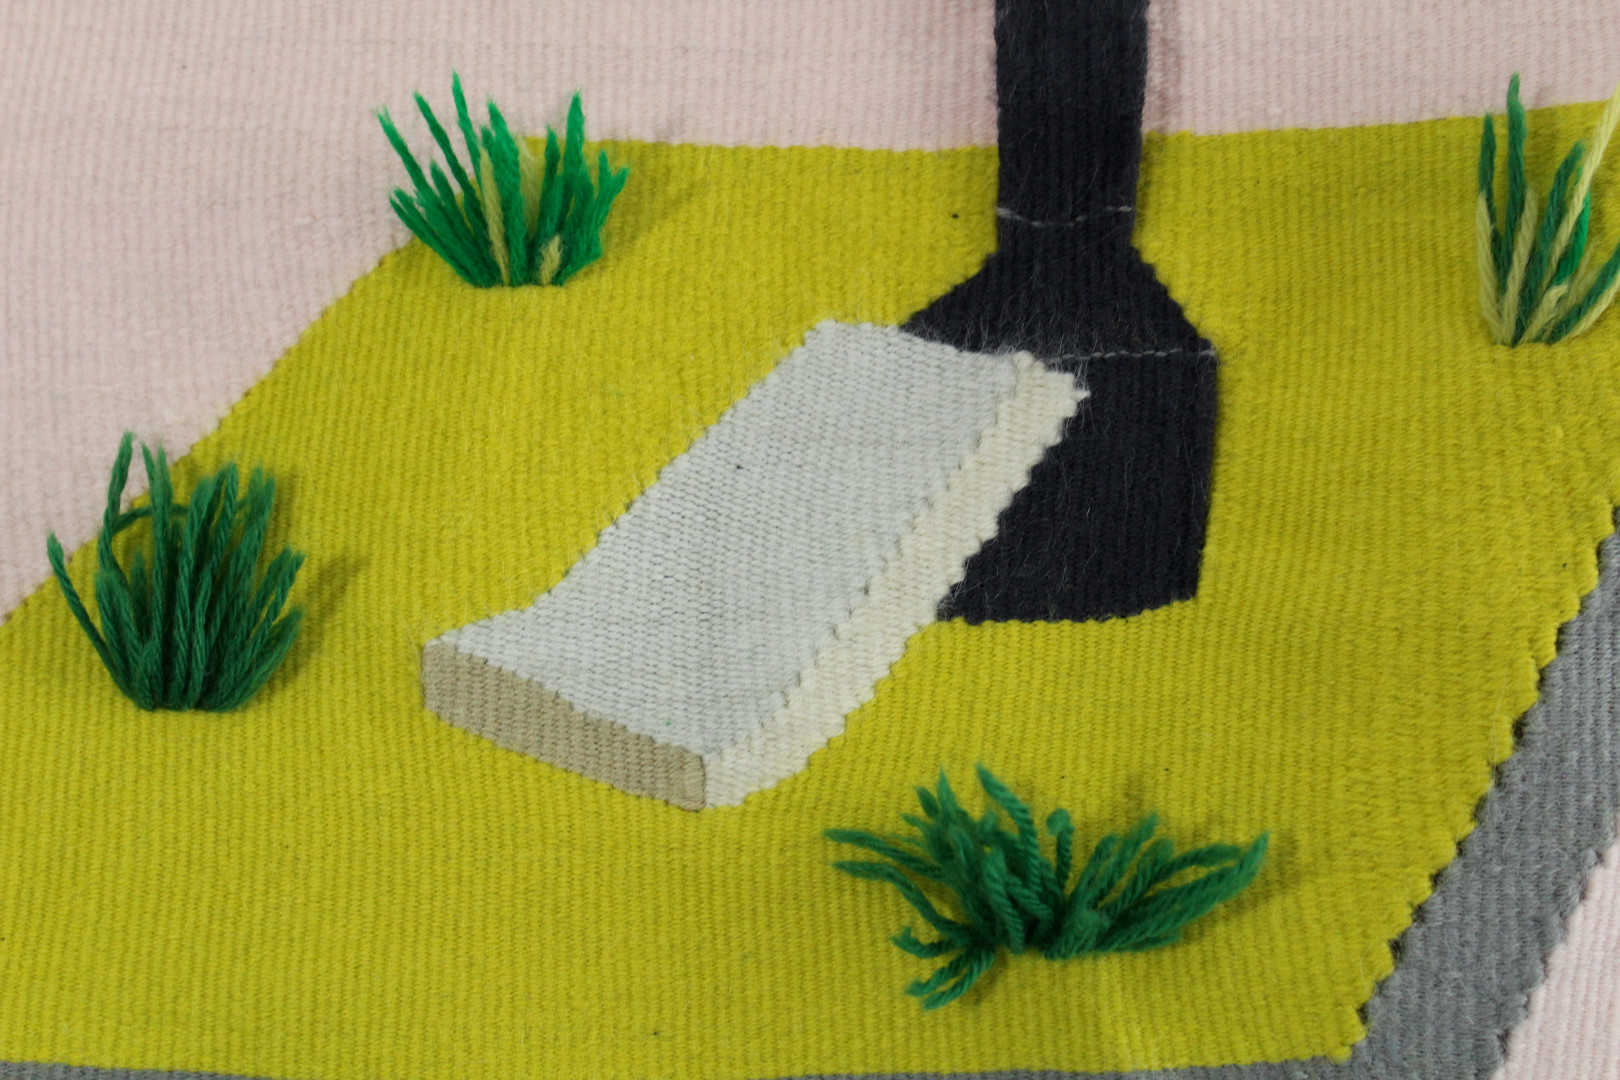 A grassy island with daffodils and a couch cushion, detail